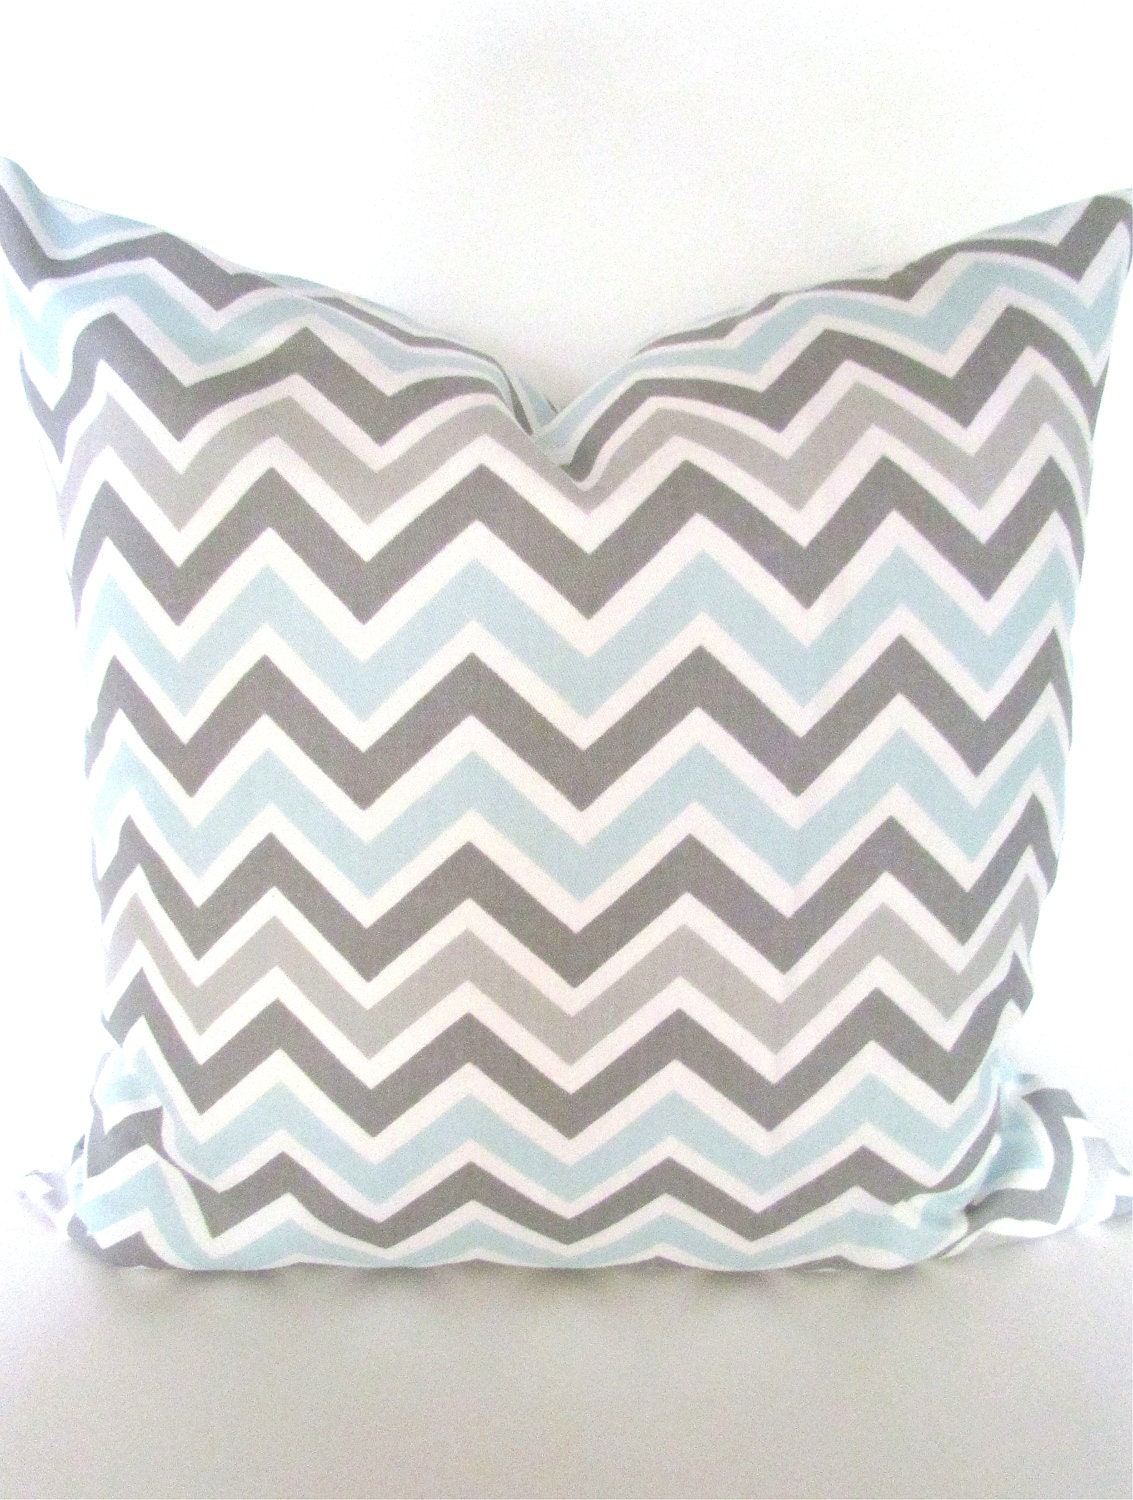 baby blue pillow covers grey chevron decorative throw pillows. Black Bedroom Furniture Sets. Home Design Ideas